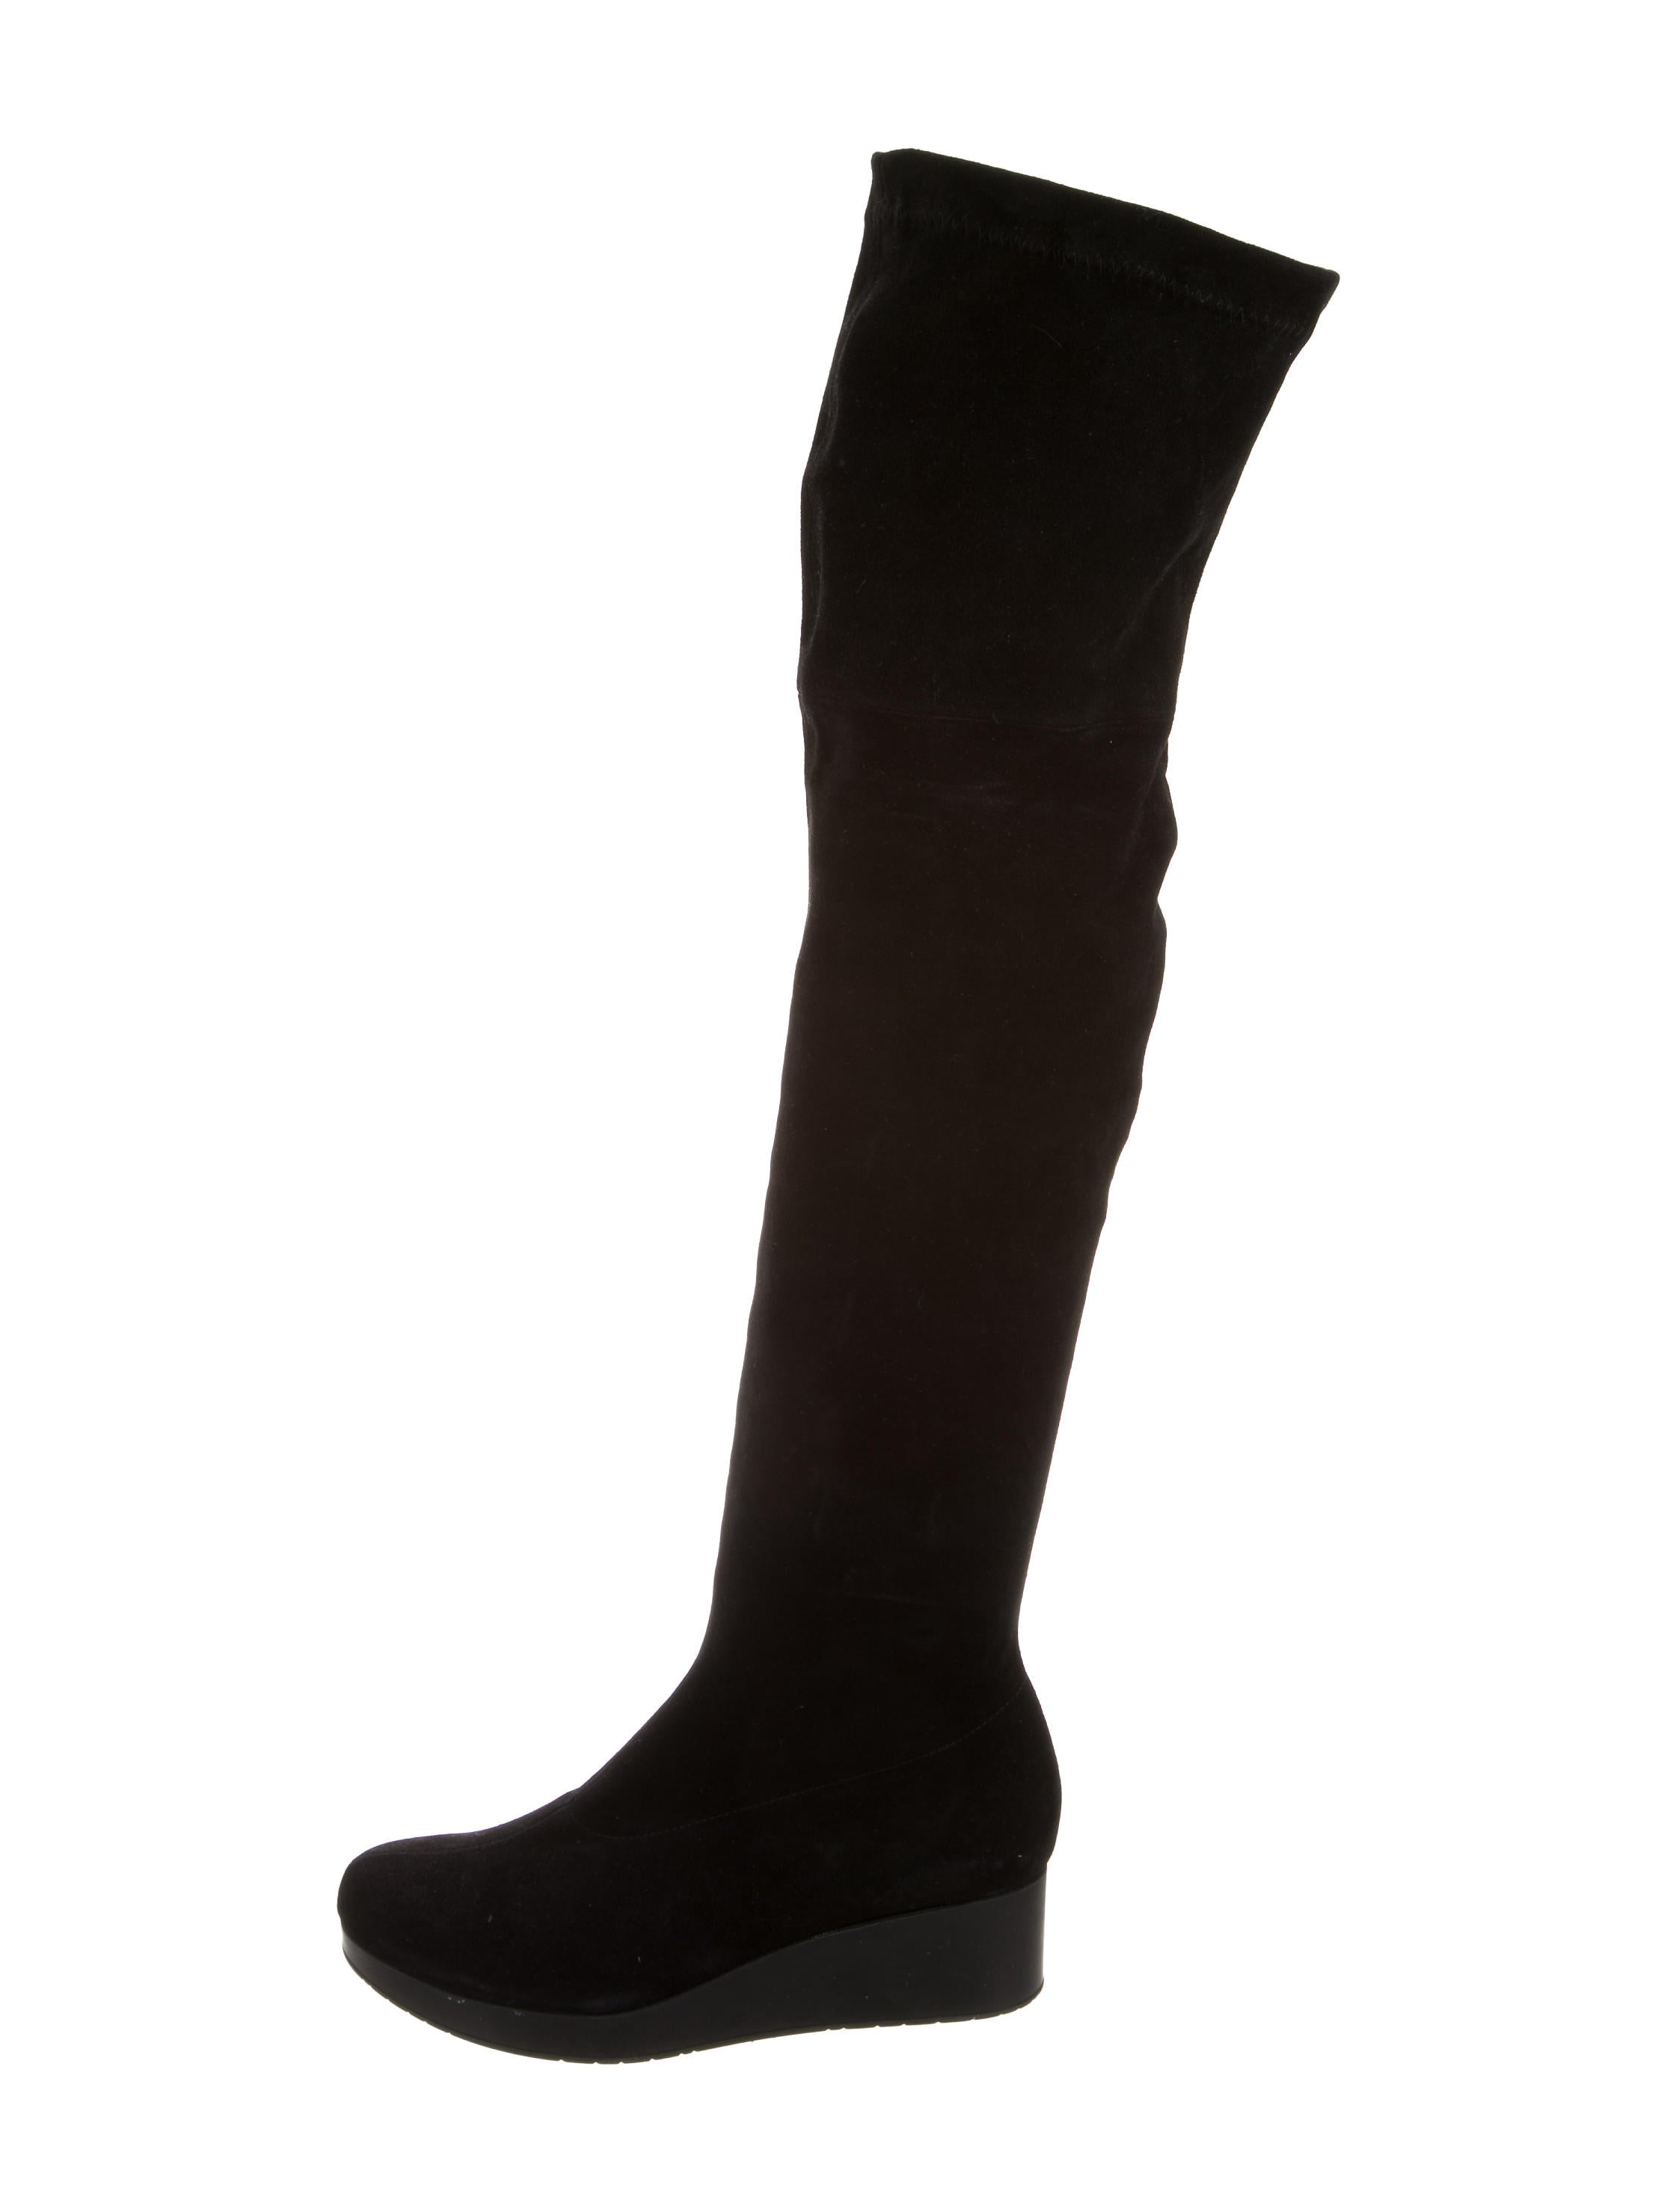 robert clergerie suede wedge boots shoes rog25118